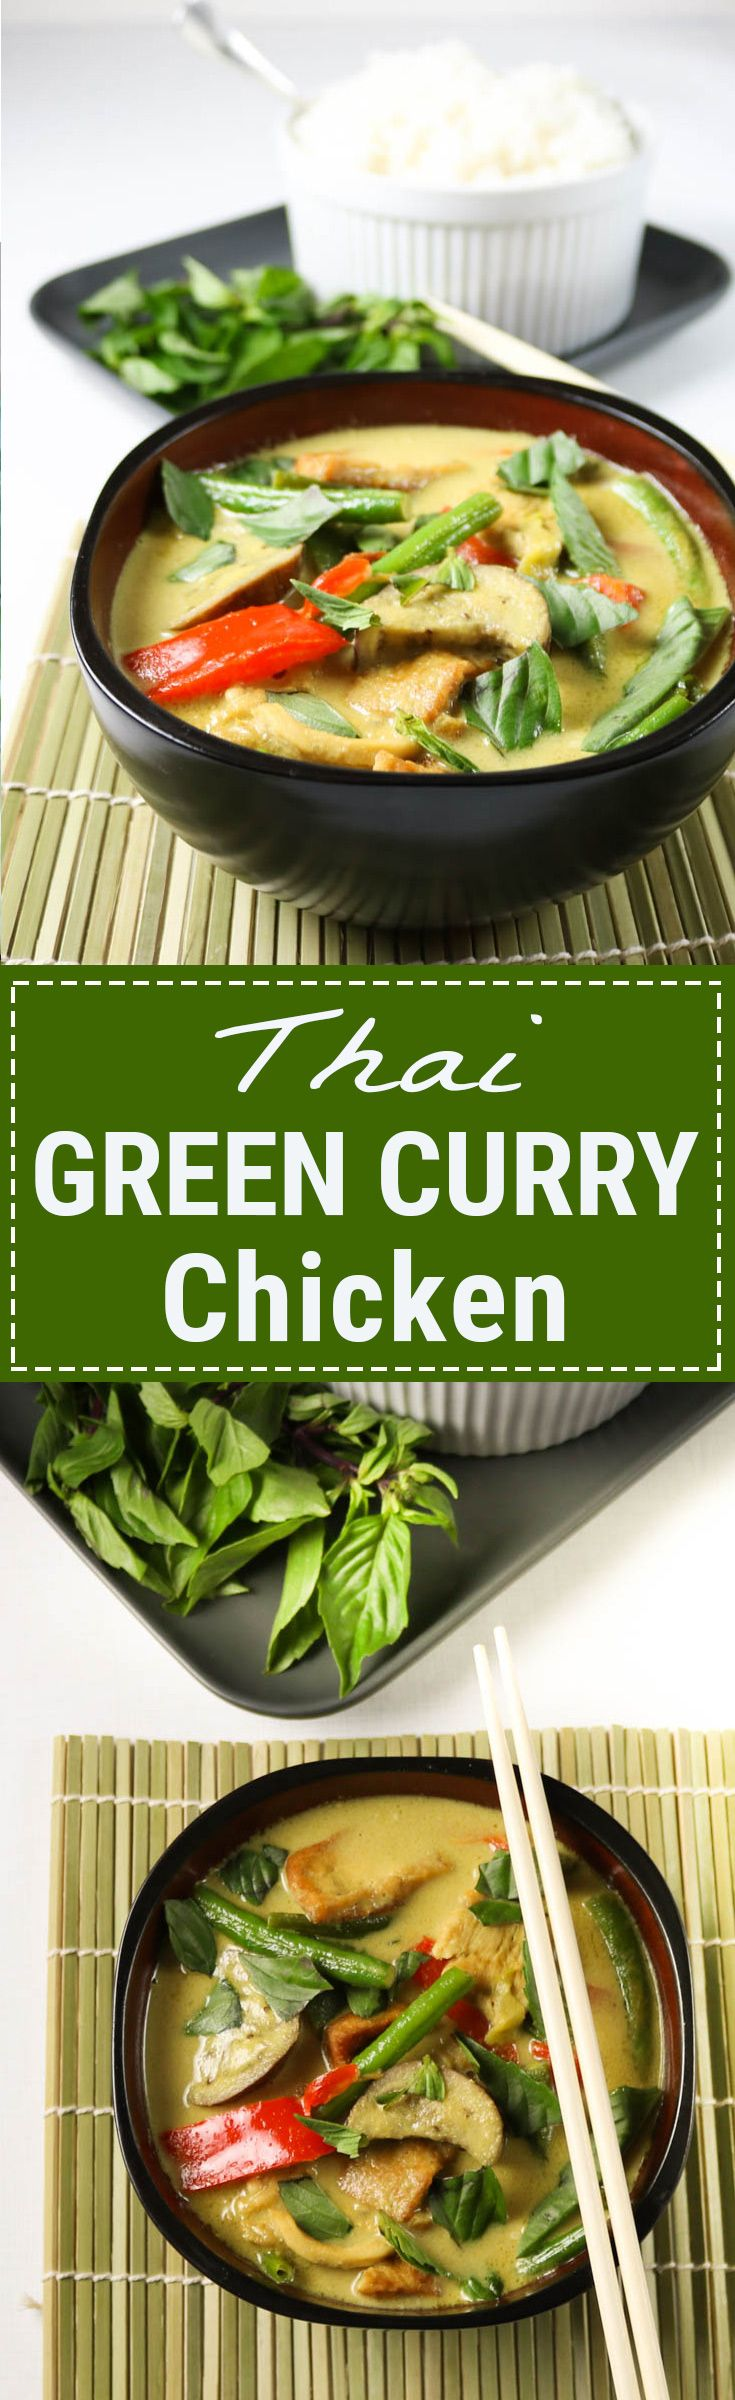 Fragrant coconut green curry simmered with fresh veggies and chicken. A one-pot, quick meal. Perfect for a weeknight. Serve with sticky or cauliflower rice for a seriously satisfying meal. Get the recipe at www.basilandoregano.com